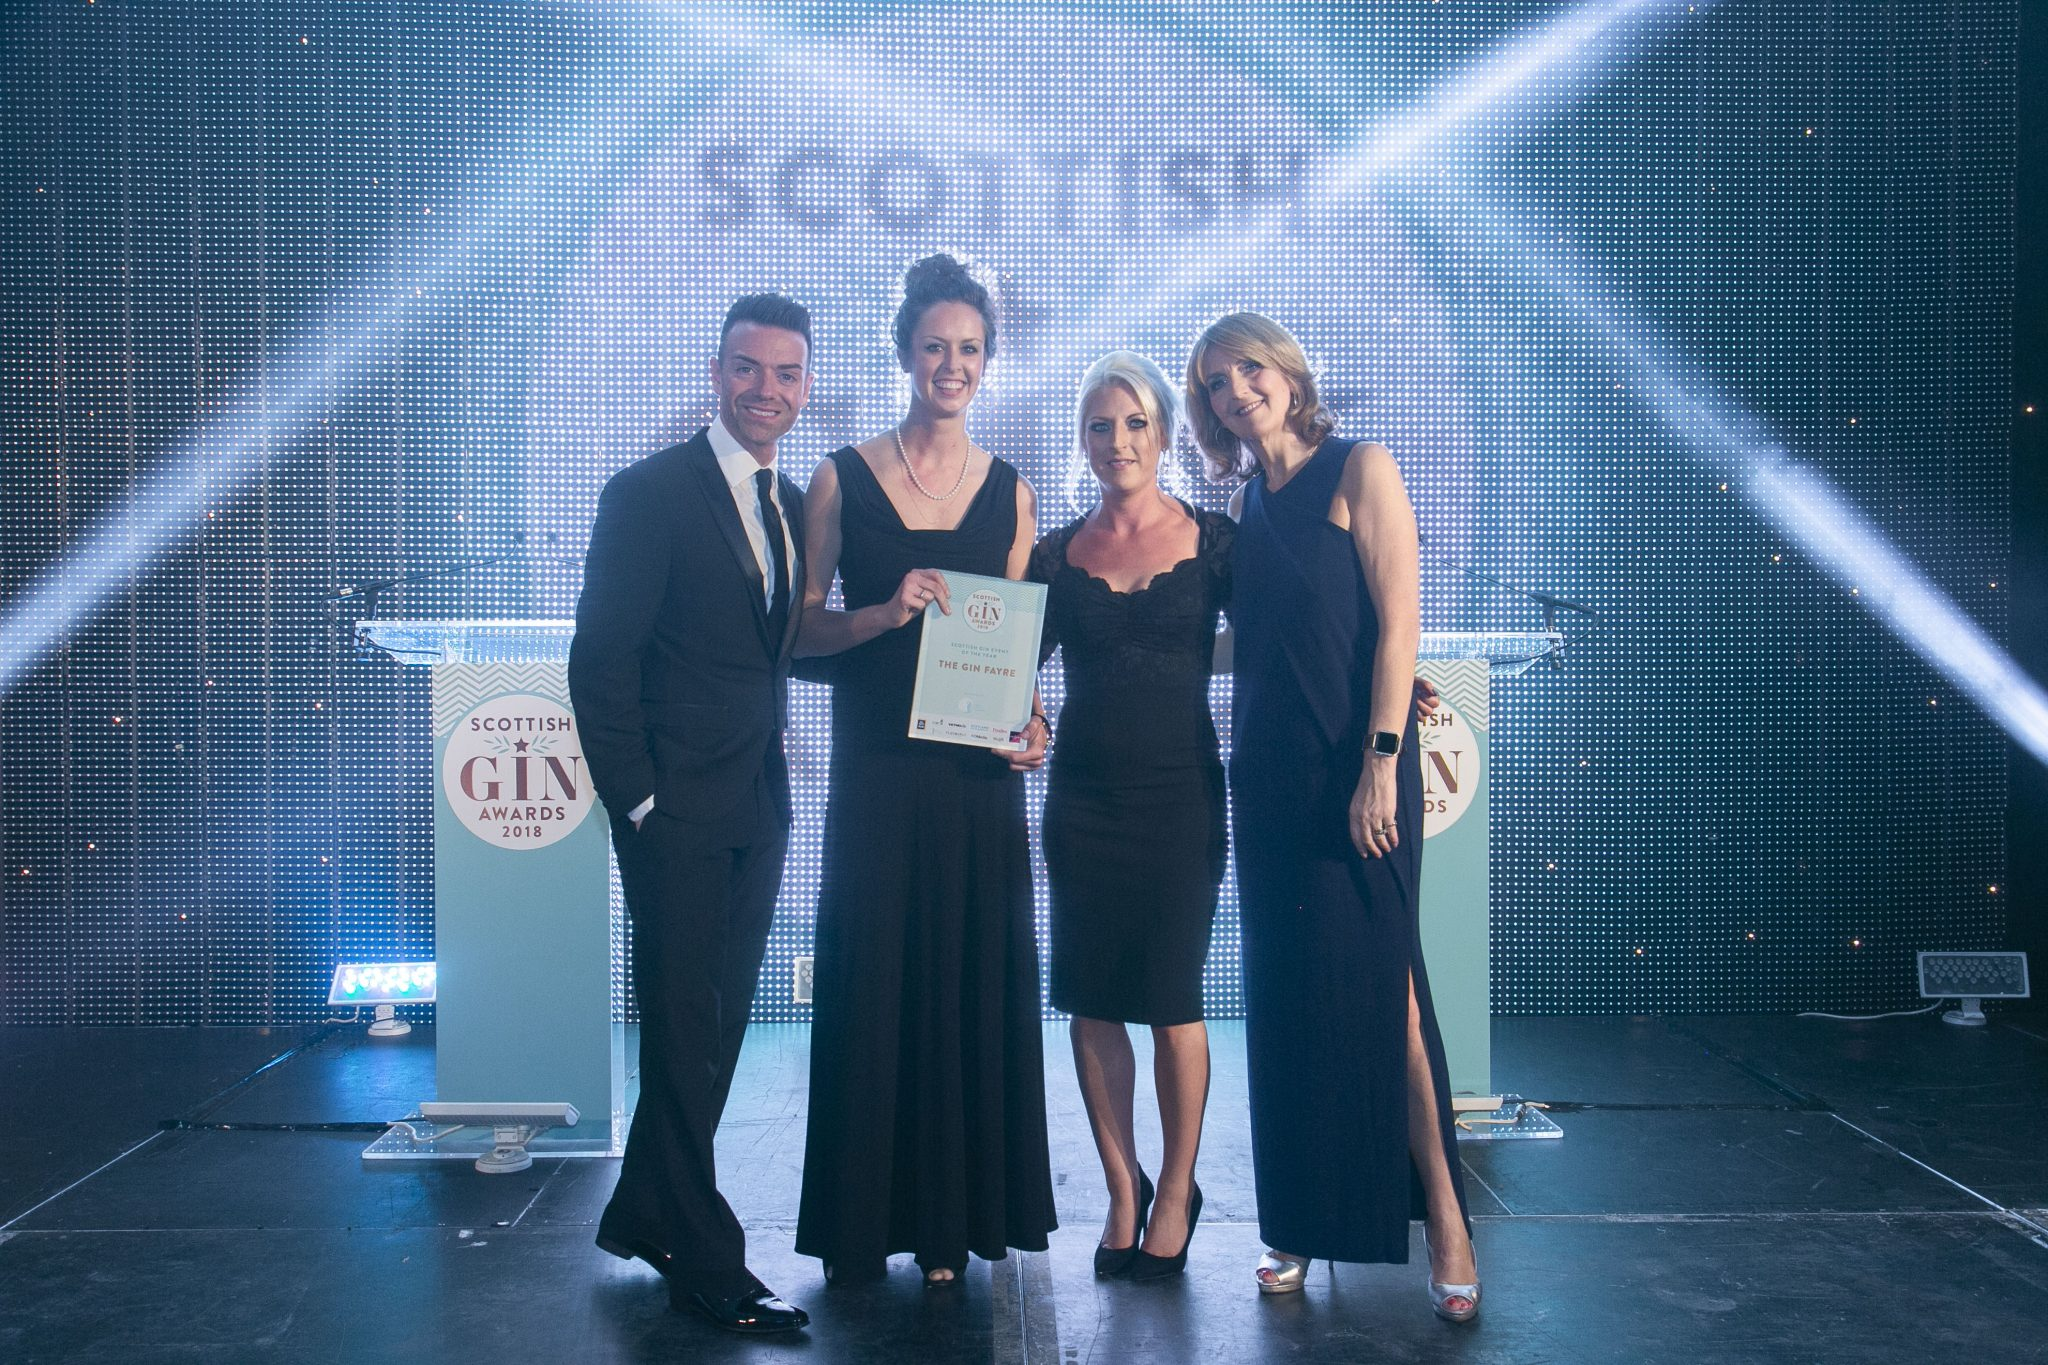 Scottish Gin Event of the Year